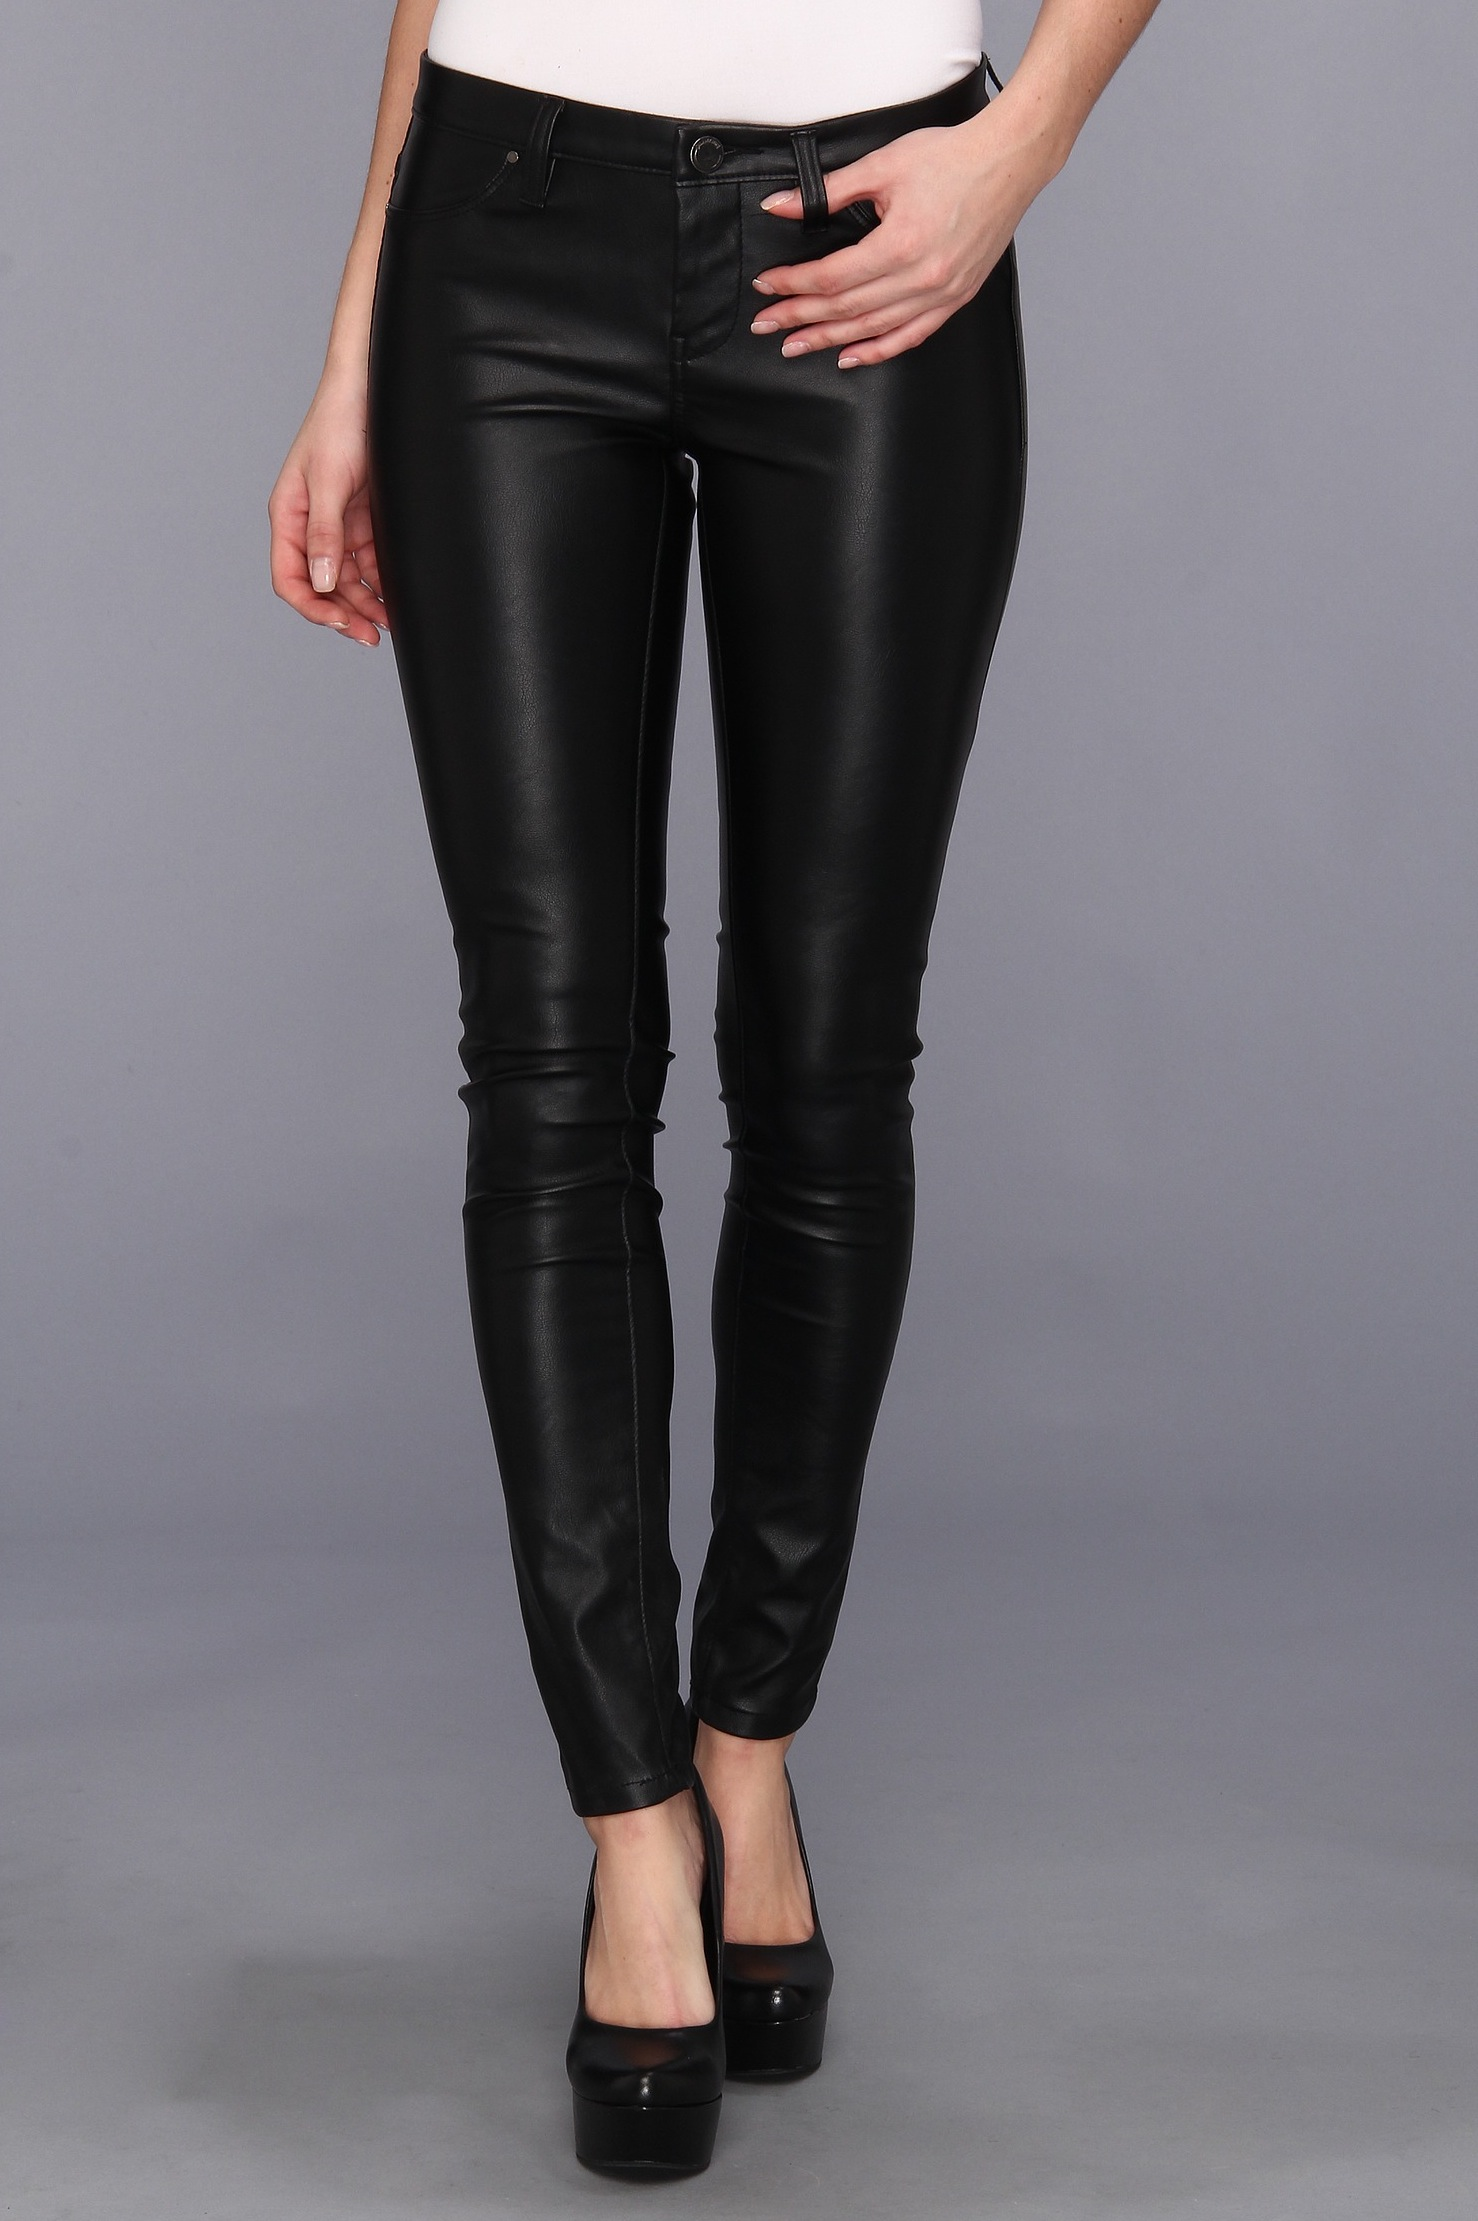 Blank NYC The Spray On Vegan Leather Skinny in Blacked Out, $87.99 at Zappos